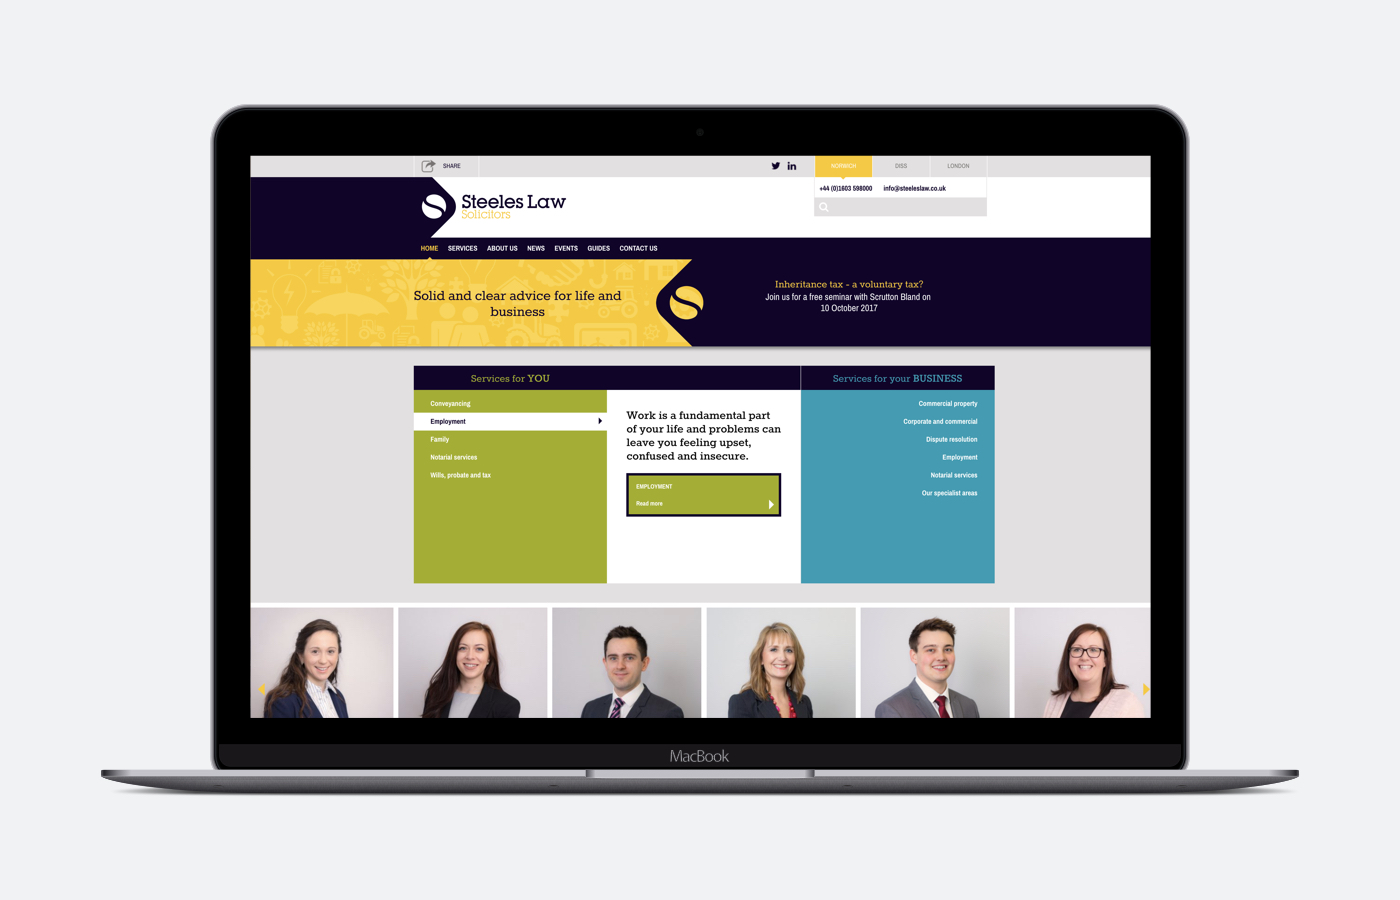 Steeles Law website launches